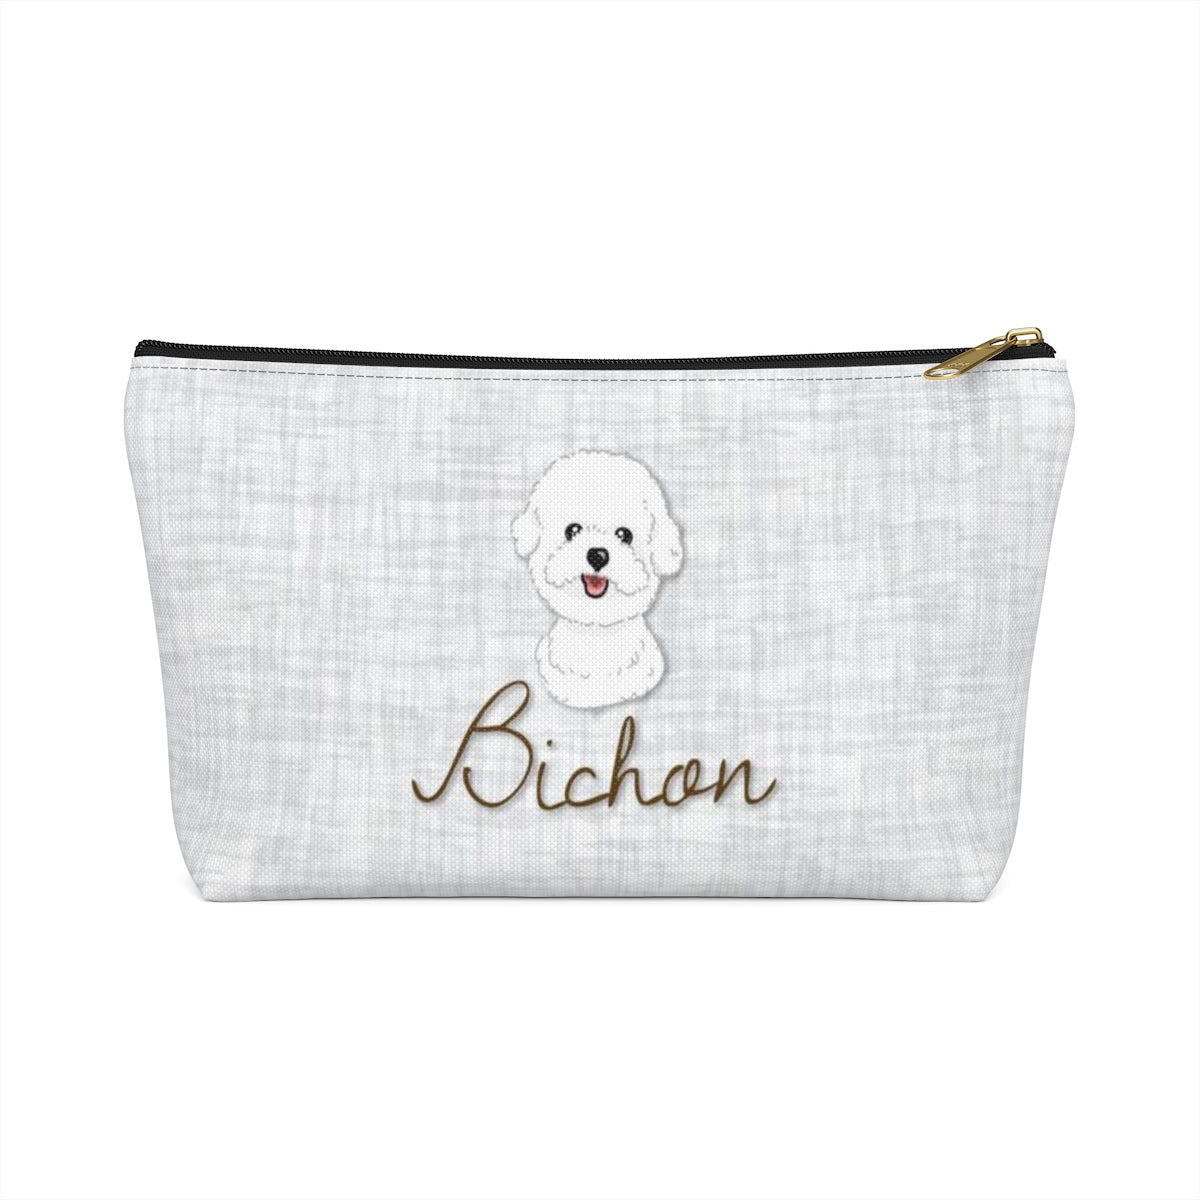 T-bottom Pouches - Bichon